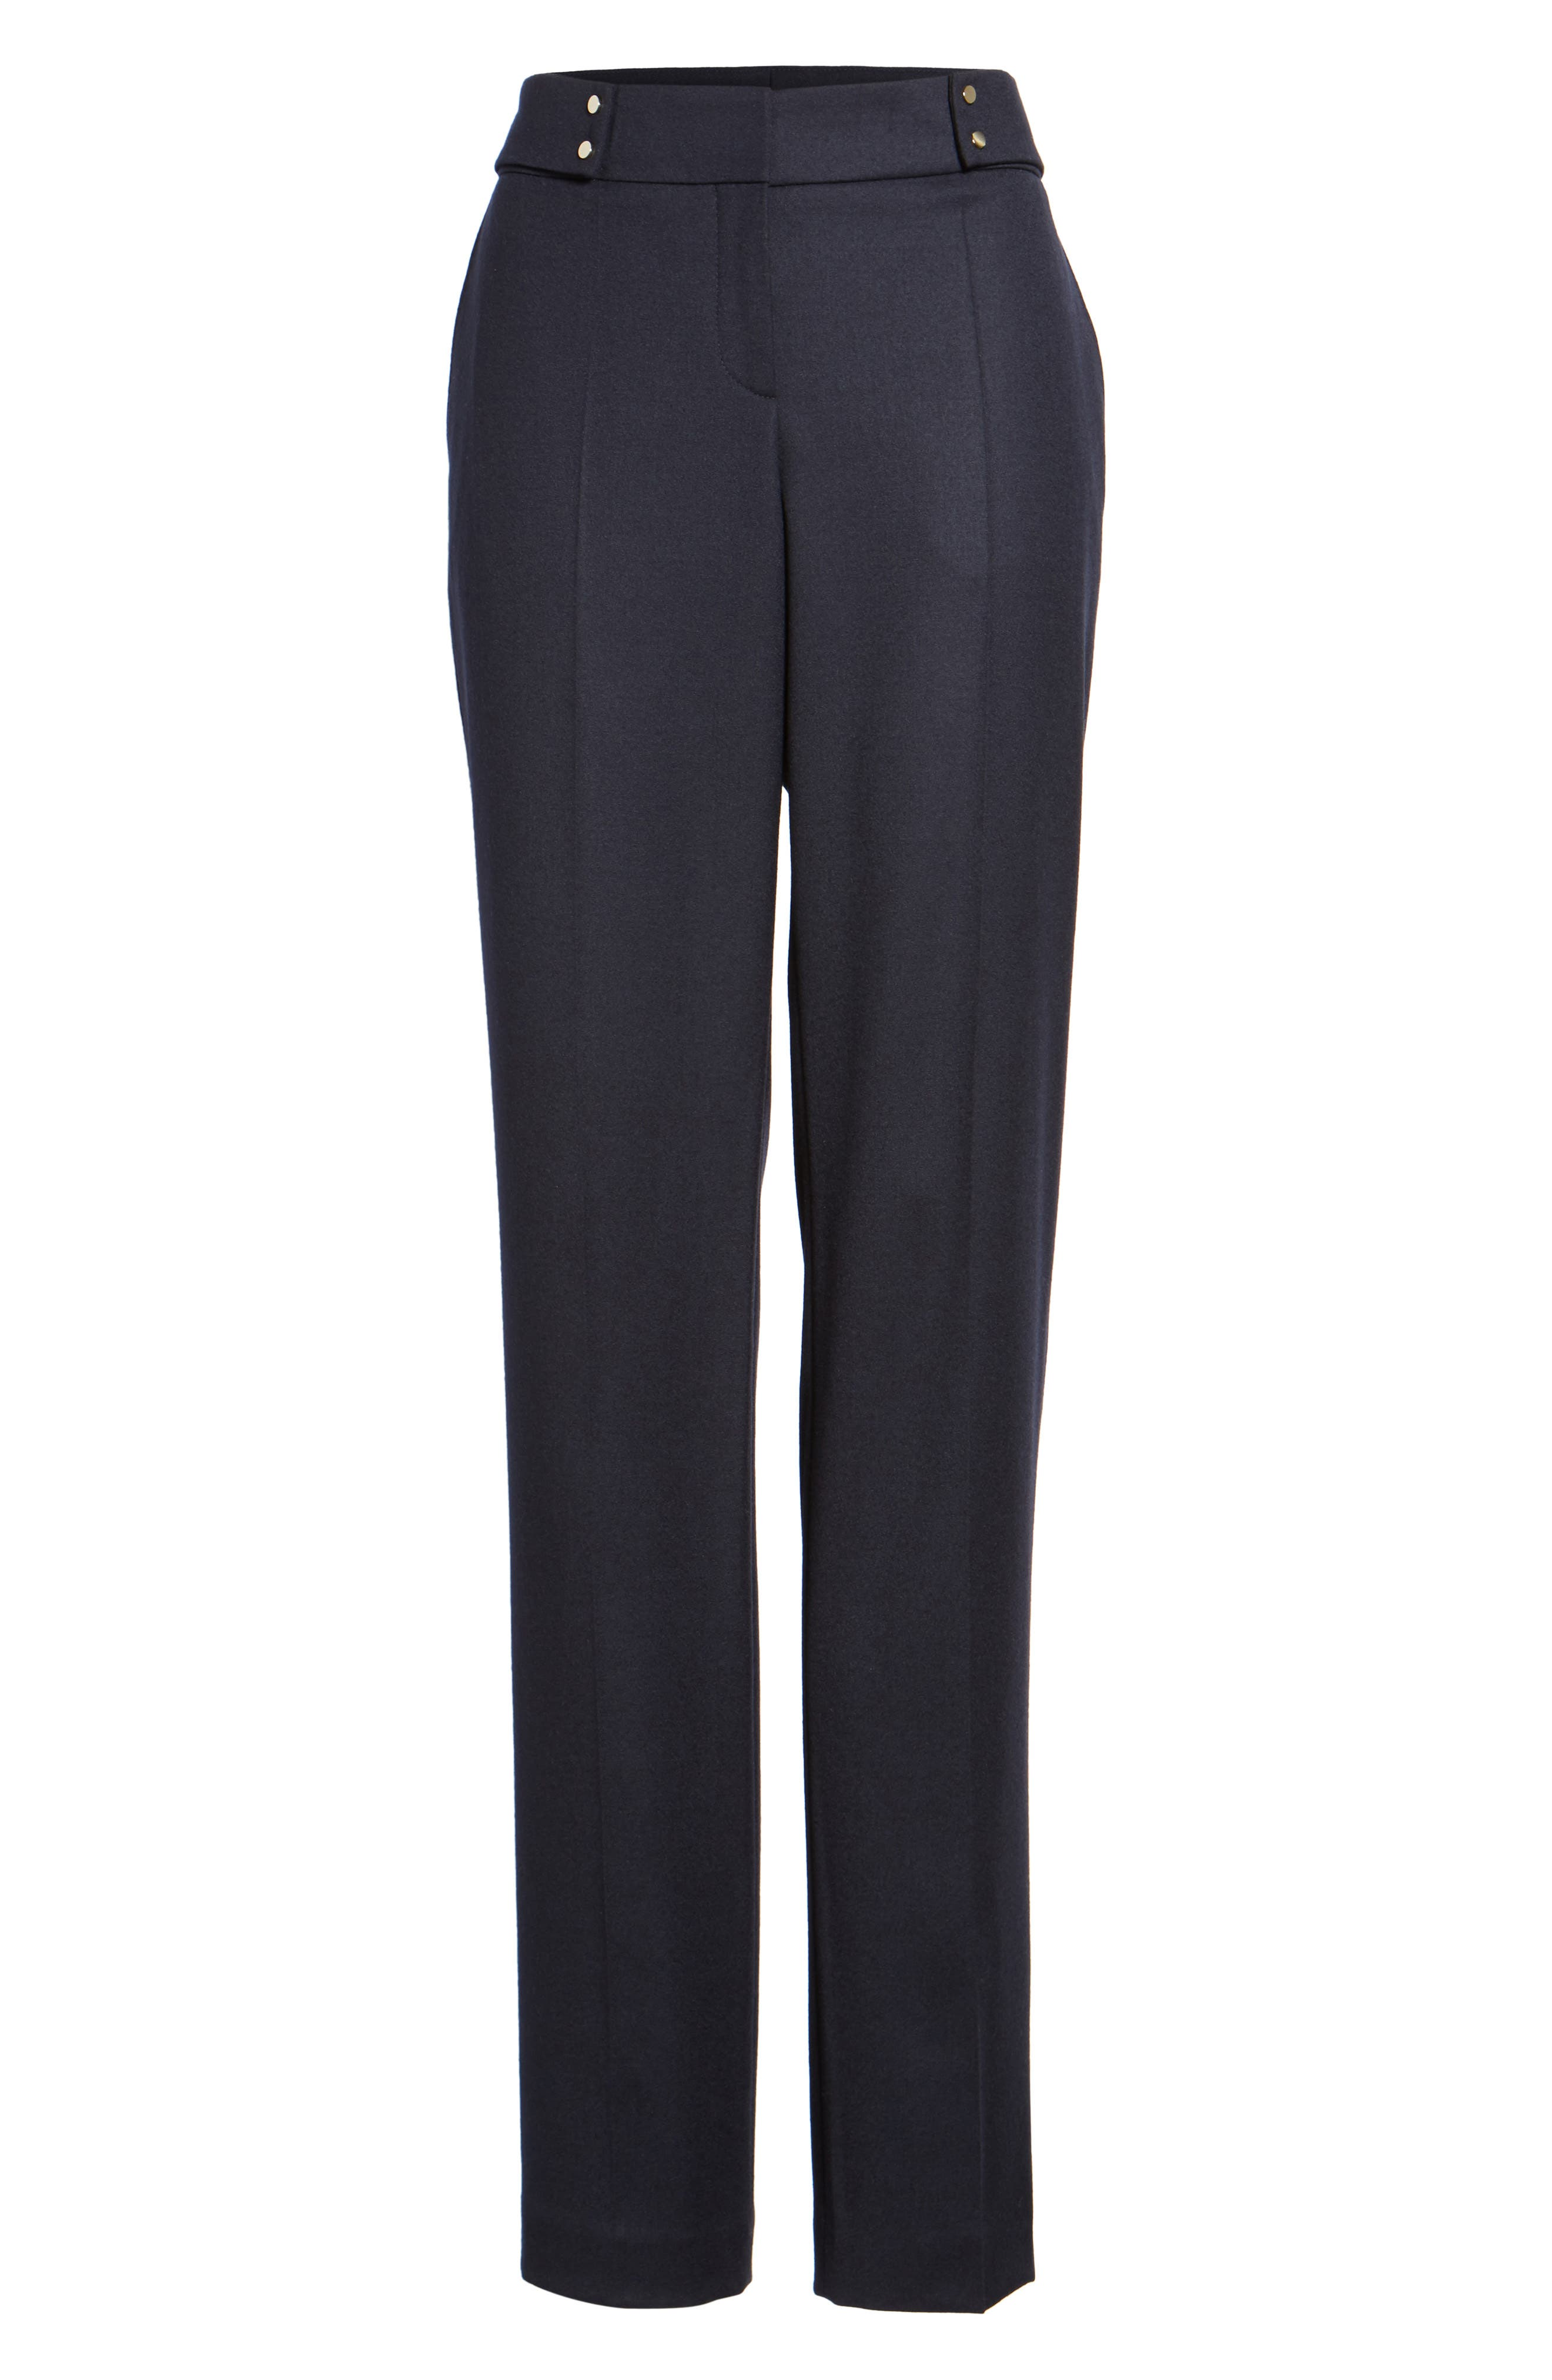 Tamea Pants,                             Alternate thumbnail 6, color,                             Navy